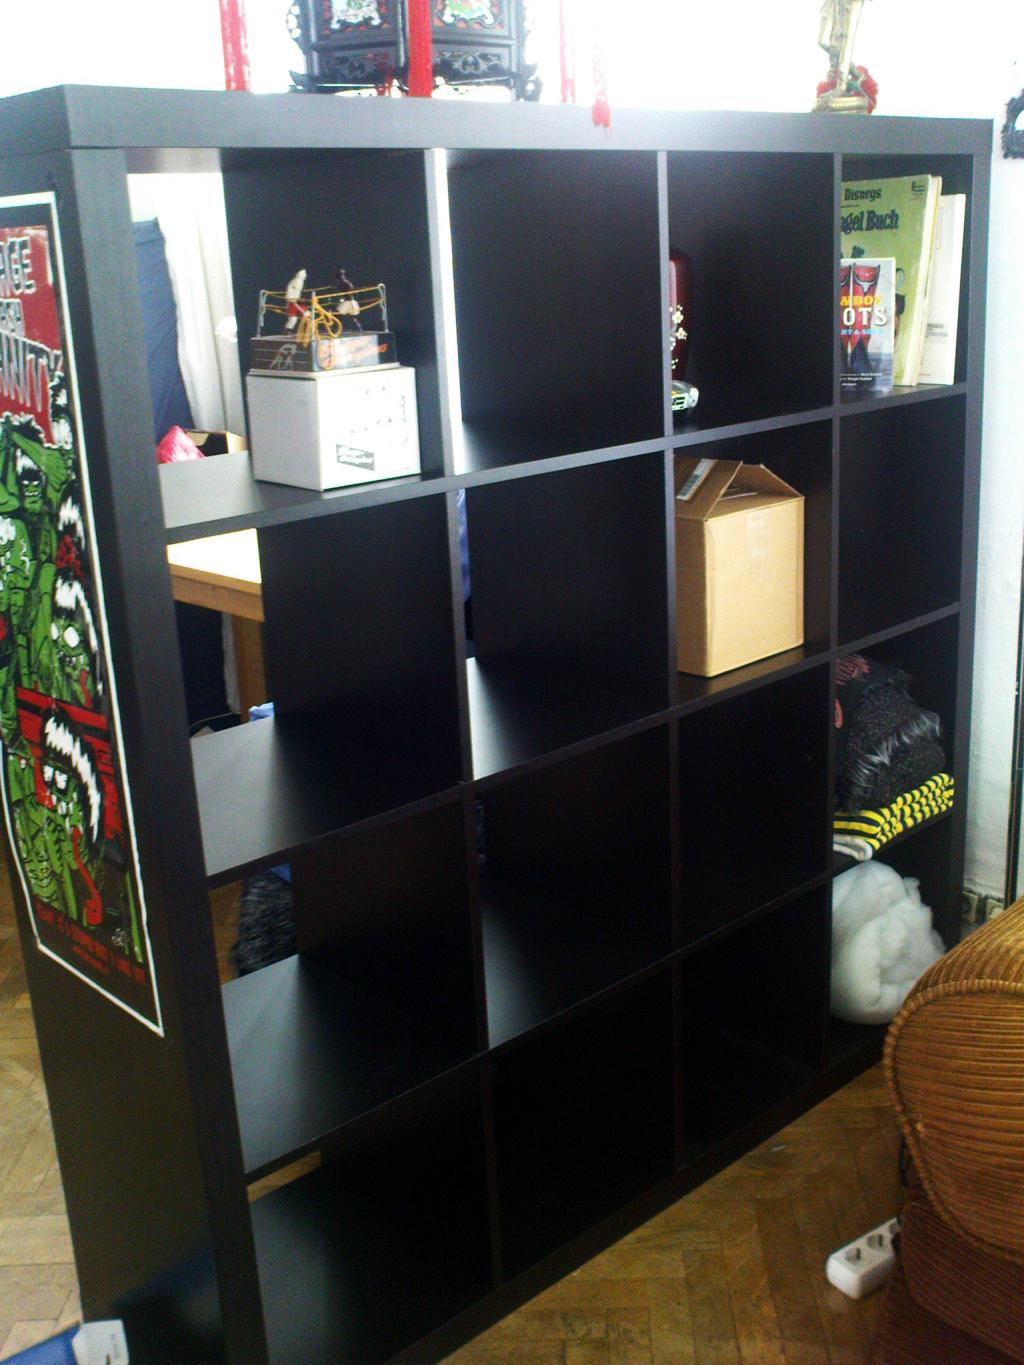 expedit regal ikea schwarz braun raumteiler. Black Bedroom Furniture Sets. Home Design Ideas